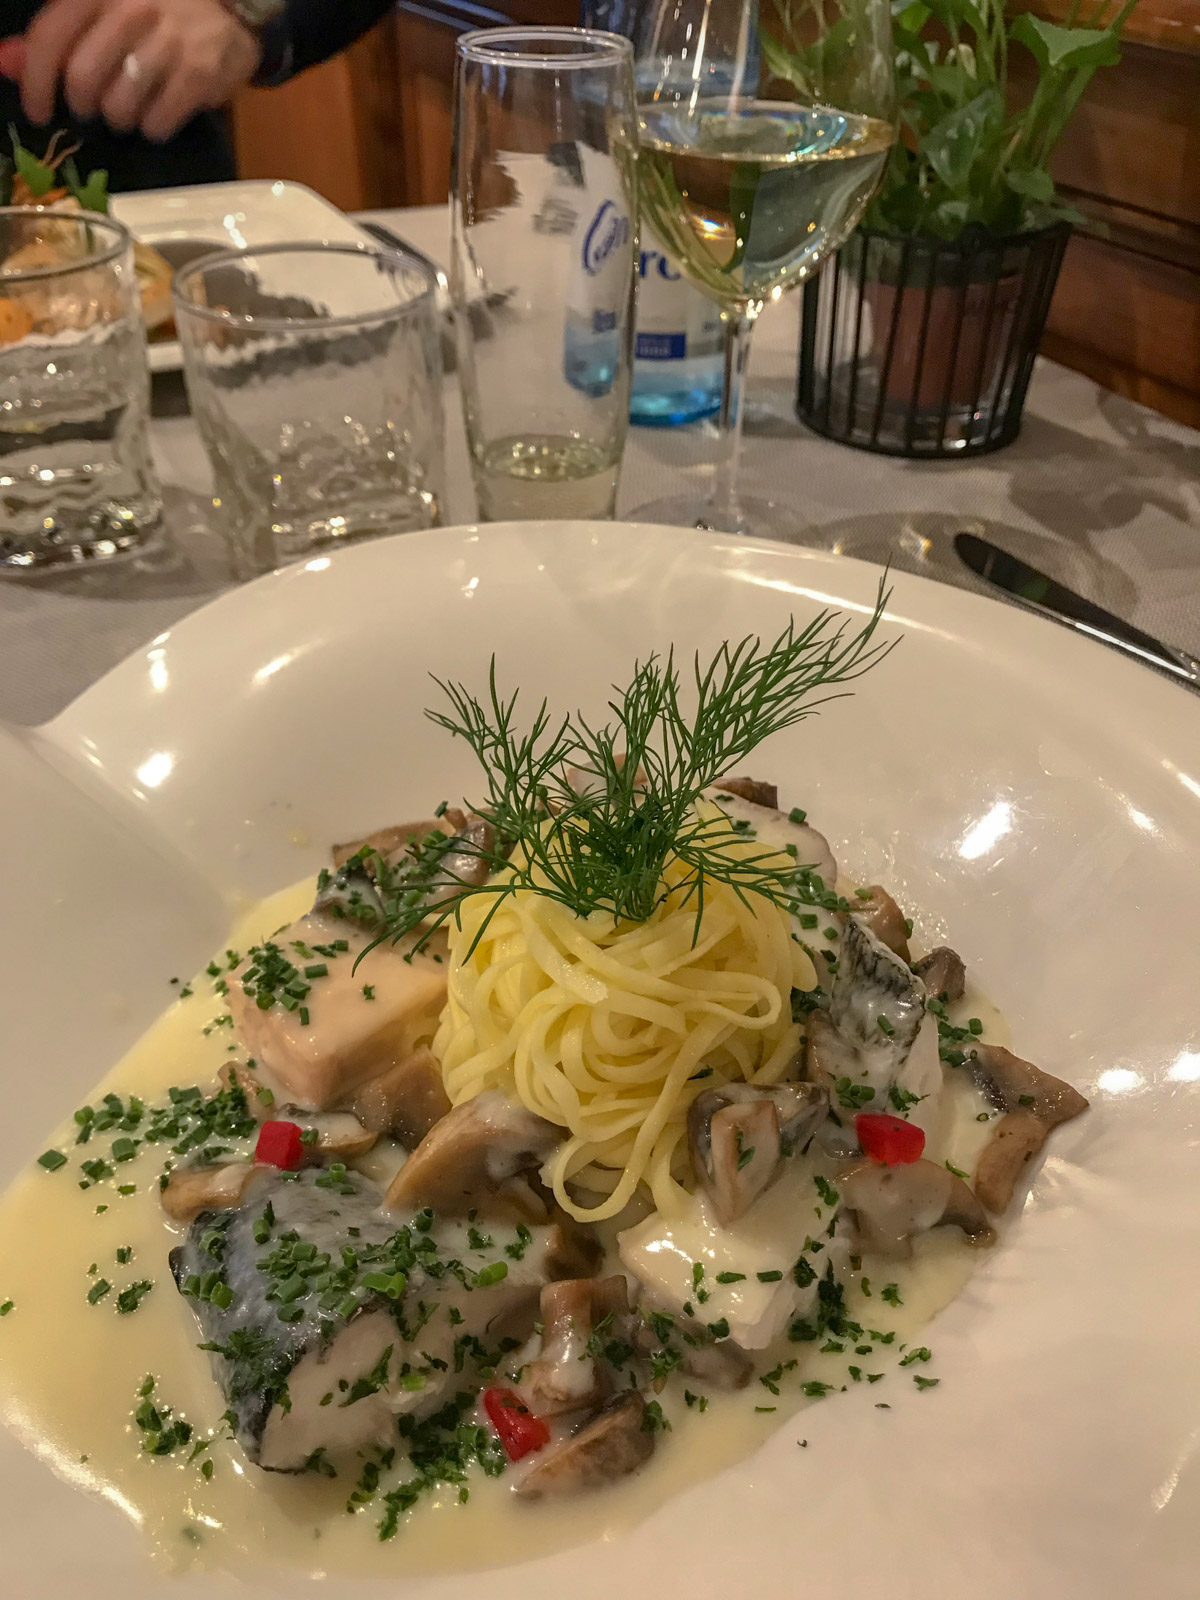 A shallow white dish with cooked fish and a ball of spaghetti, garnished with herbs and served with white sauce